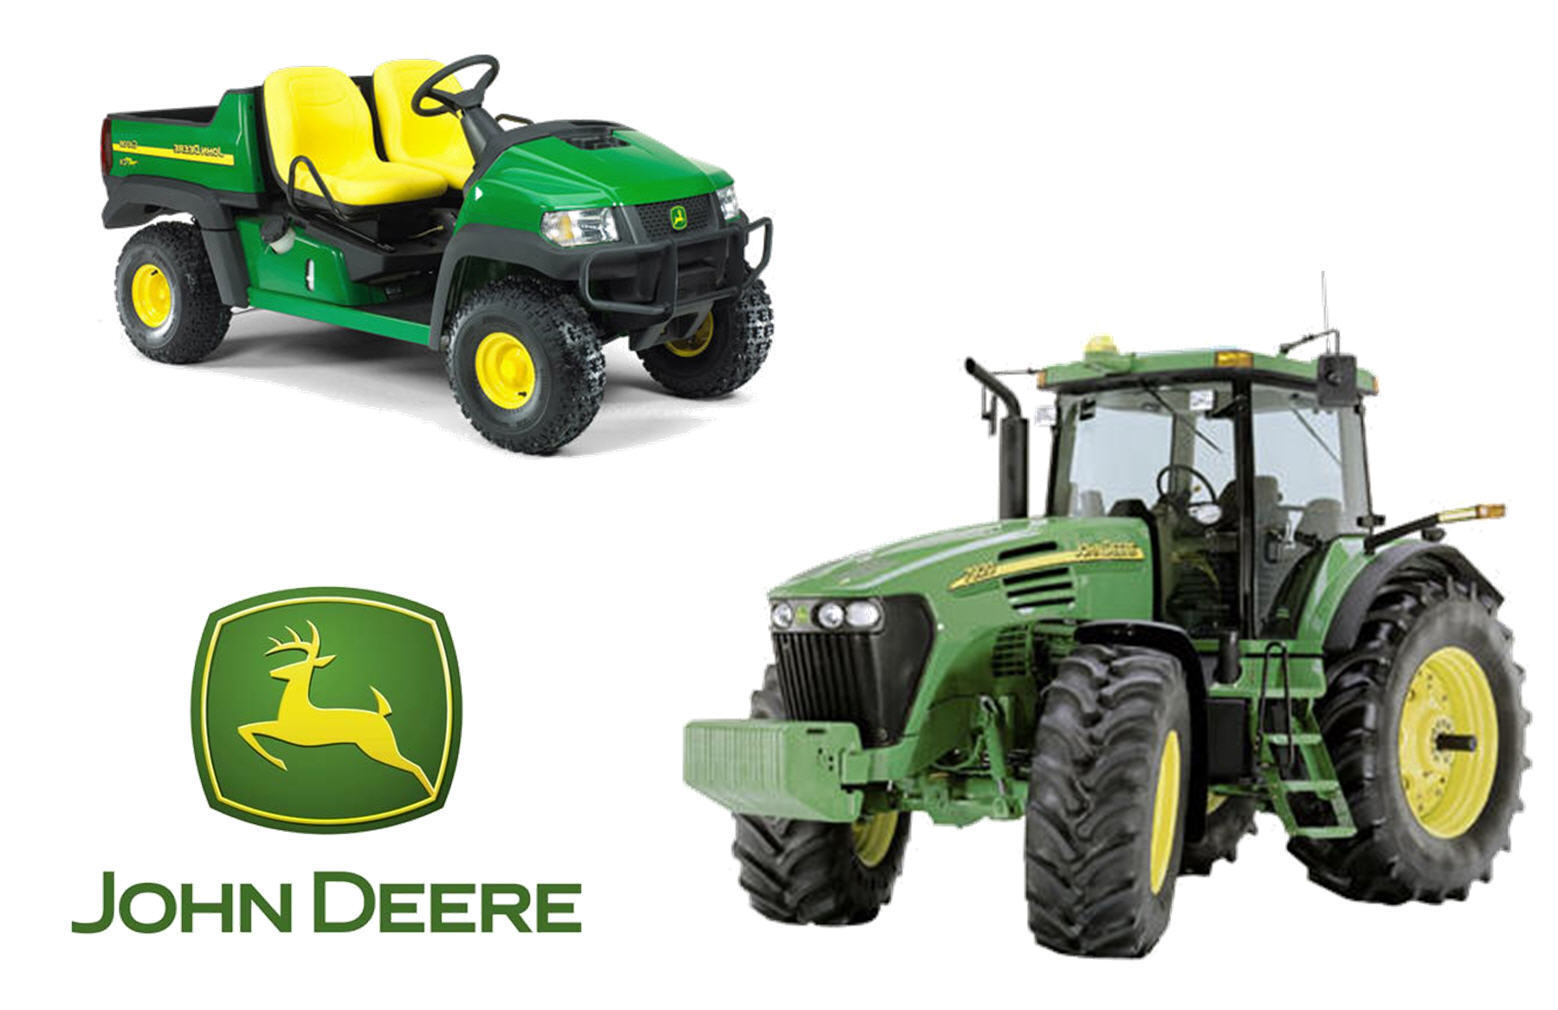 John Deere Engines : Items in discount john deere parts shop on ebay